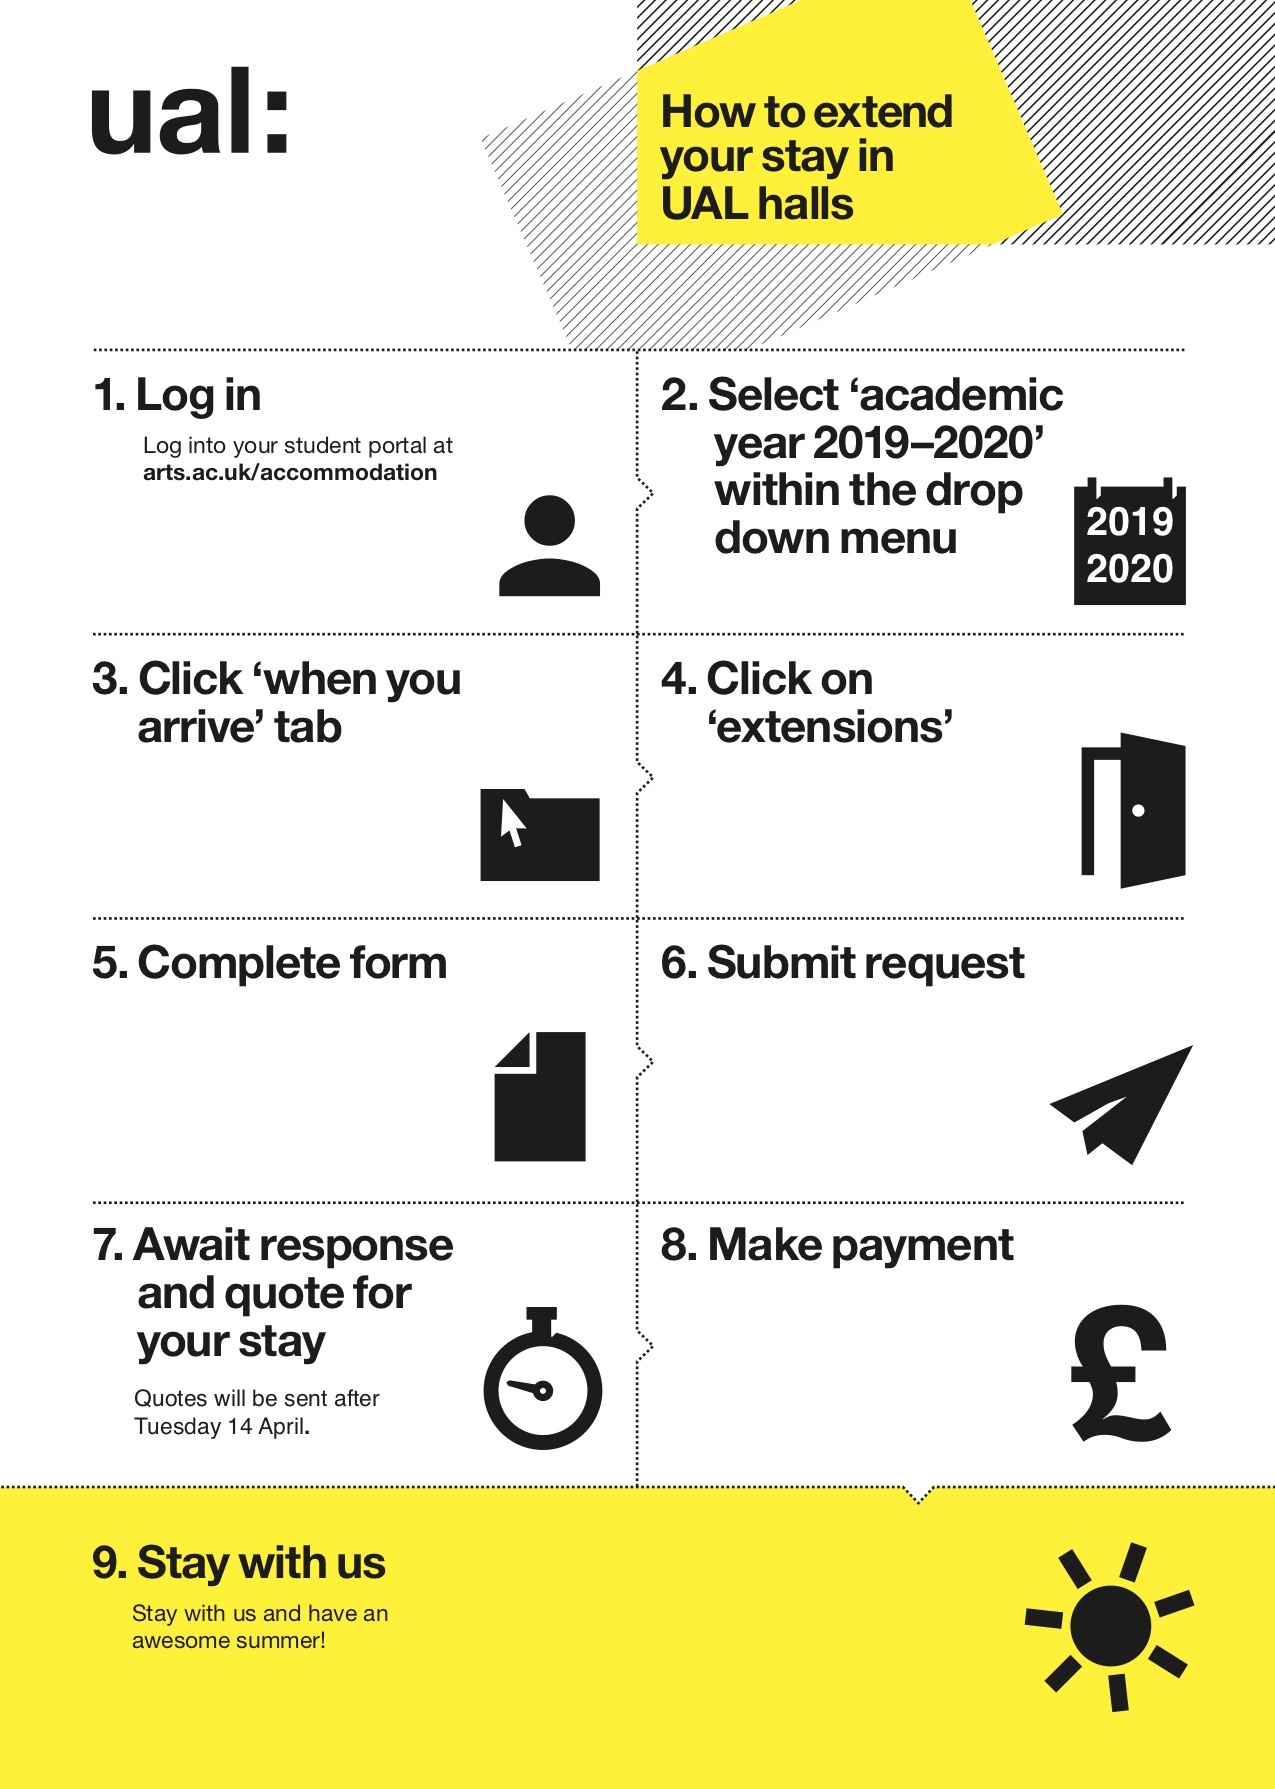 An infographic explaining how to extend your stay in halls